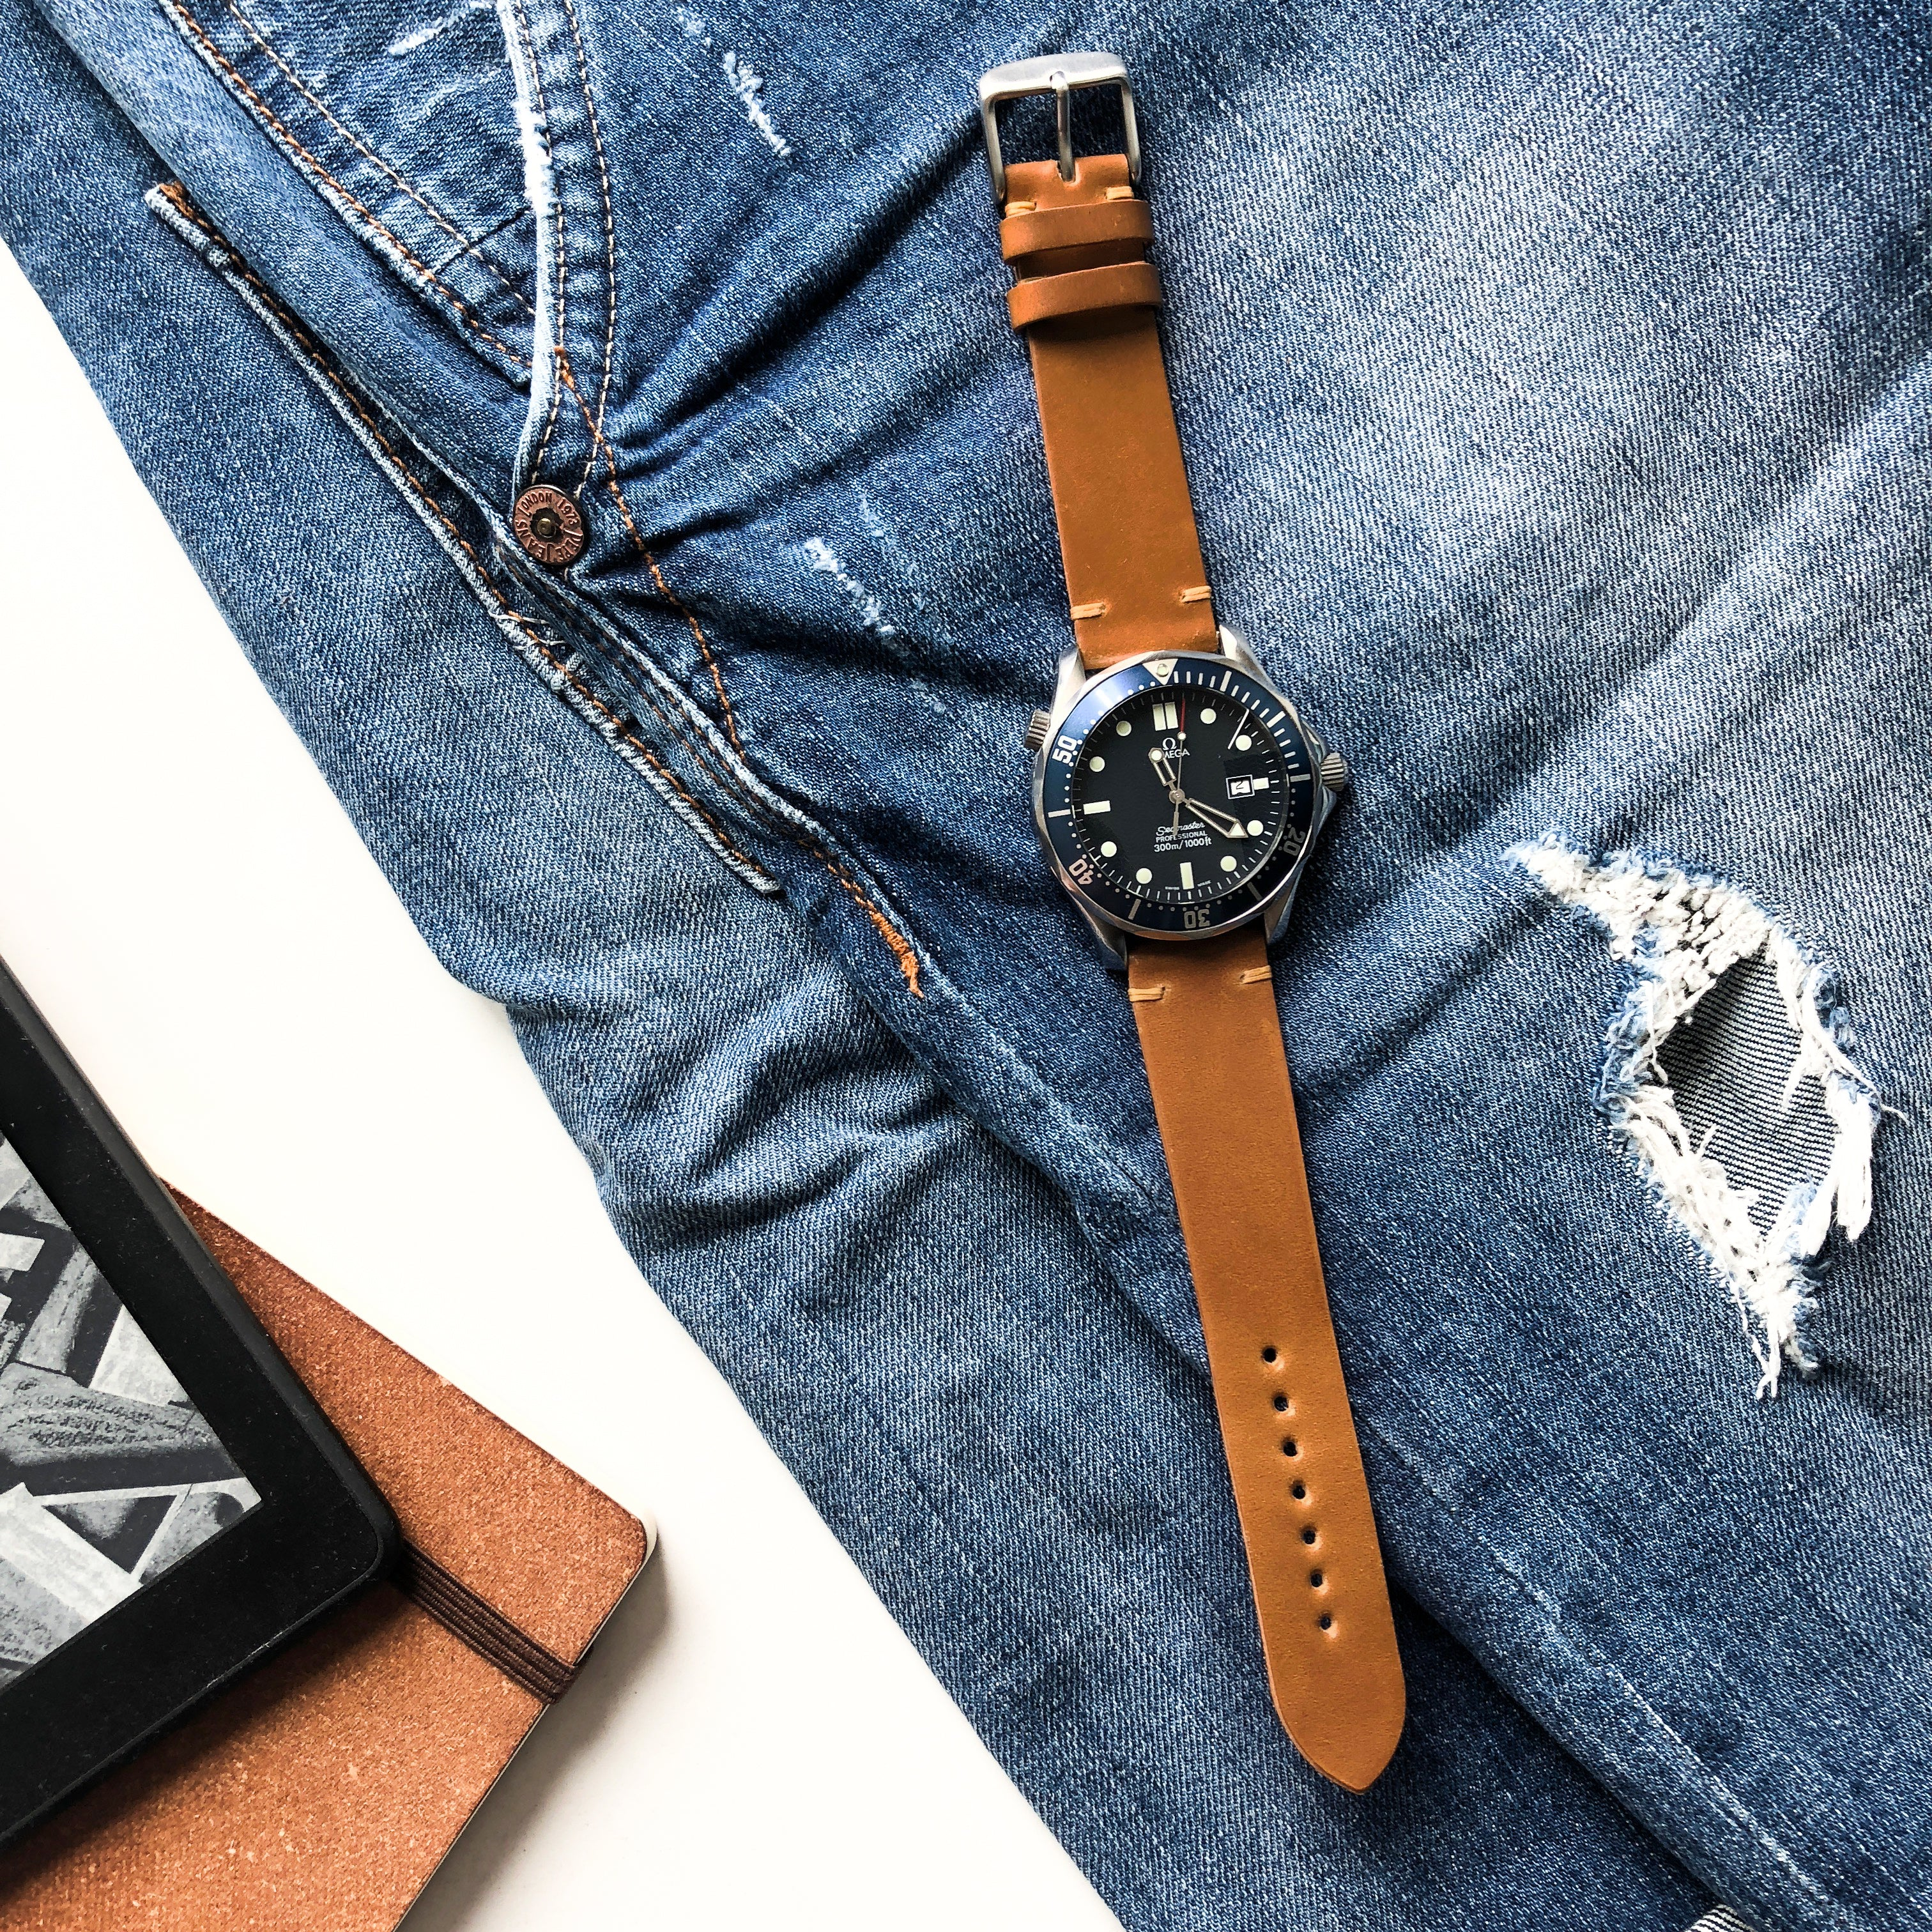 whisky-cordovan-watch-strap